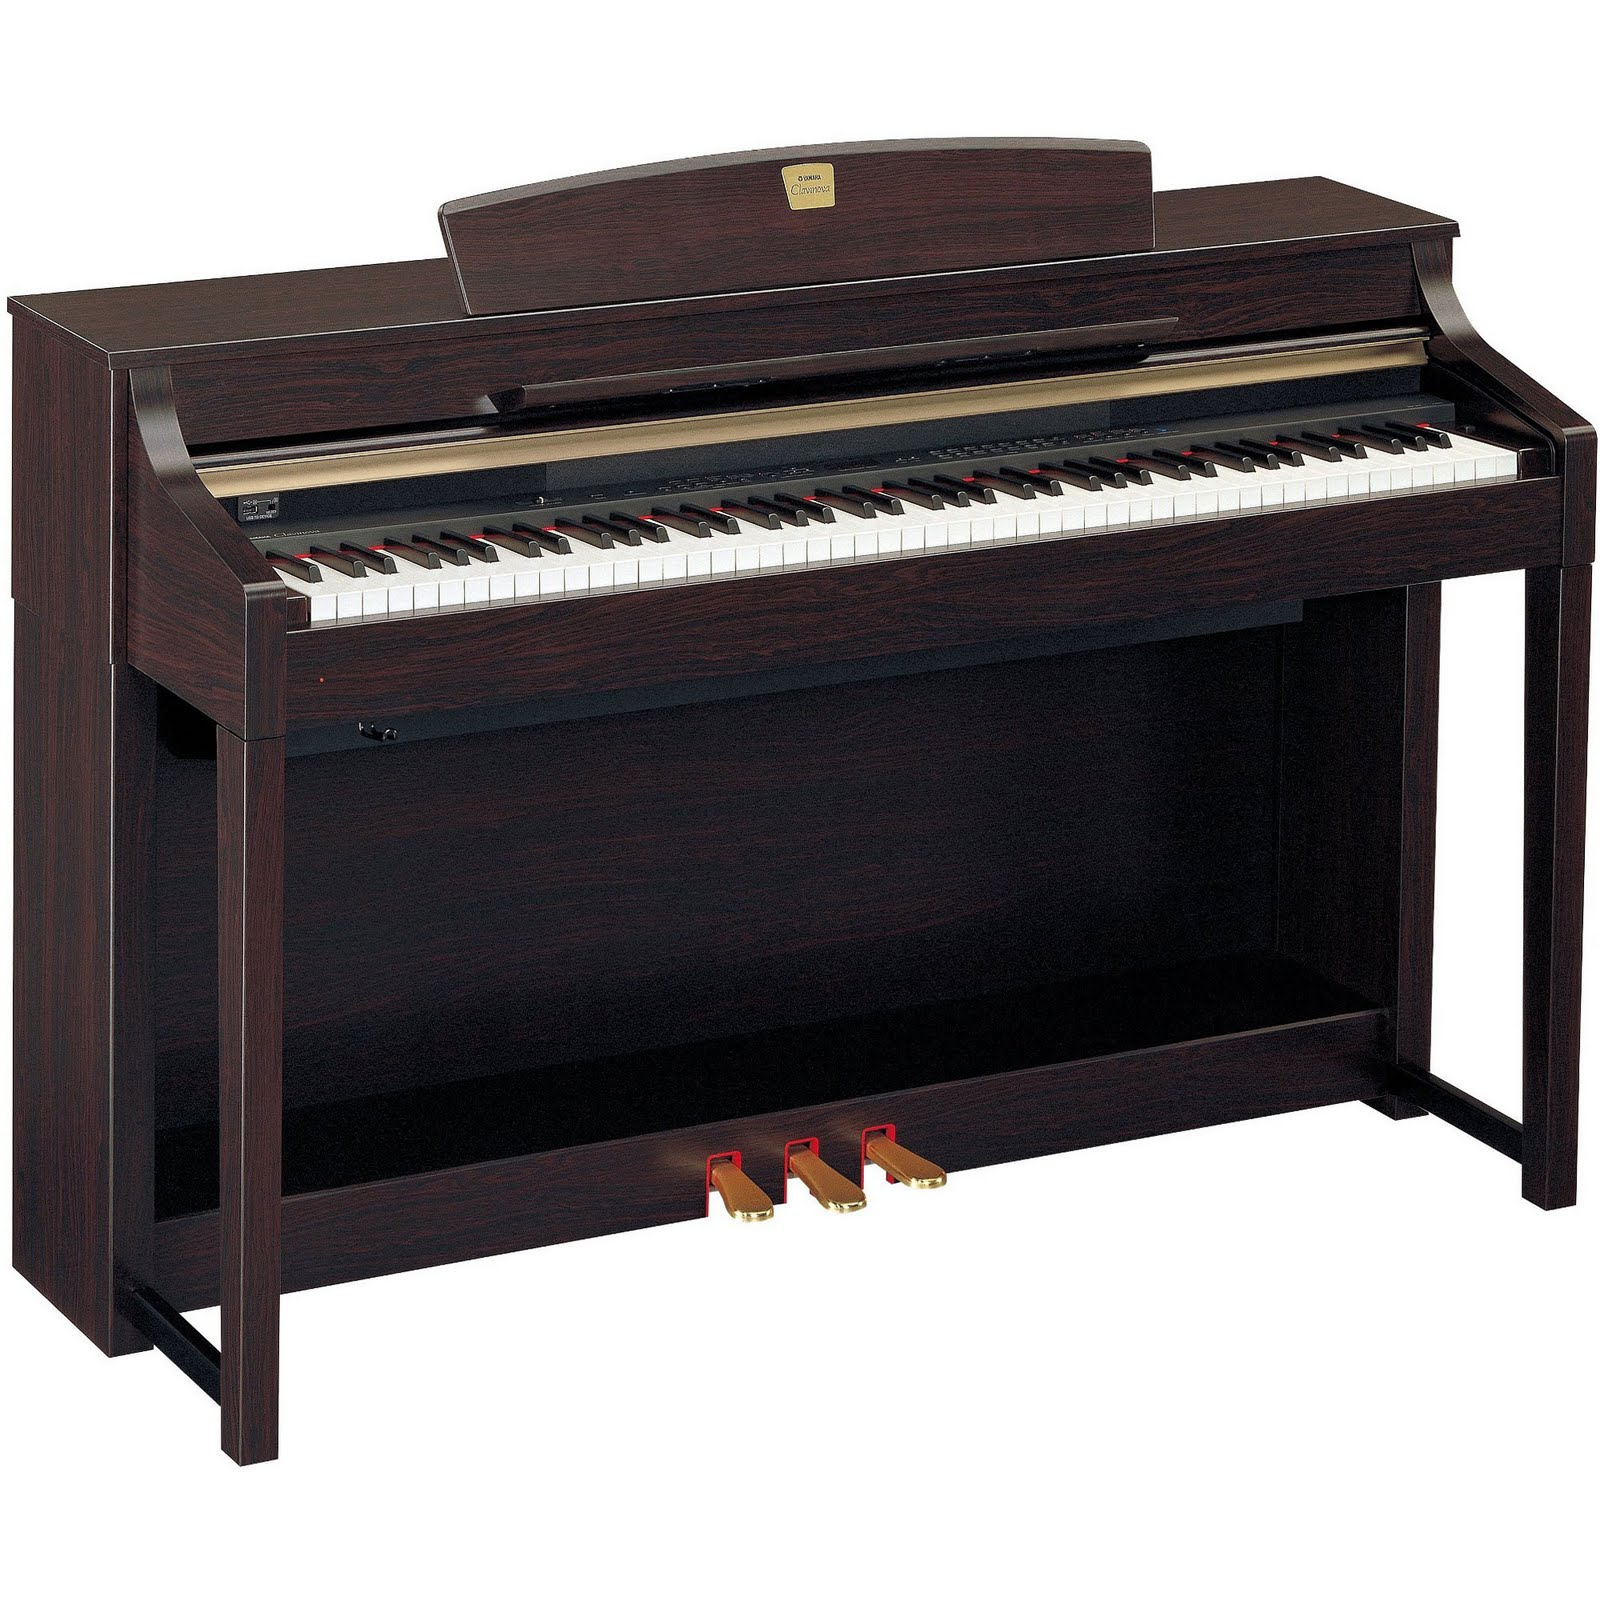 yamaha yamaha clavinova. Black Bedroom Furniture Sets. Home Design Ideas